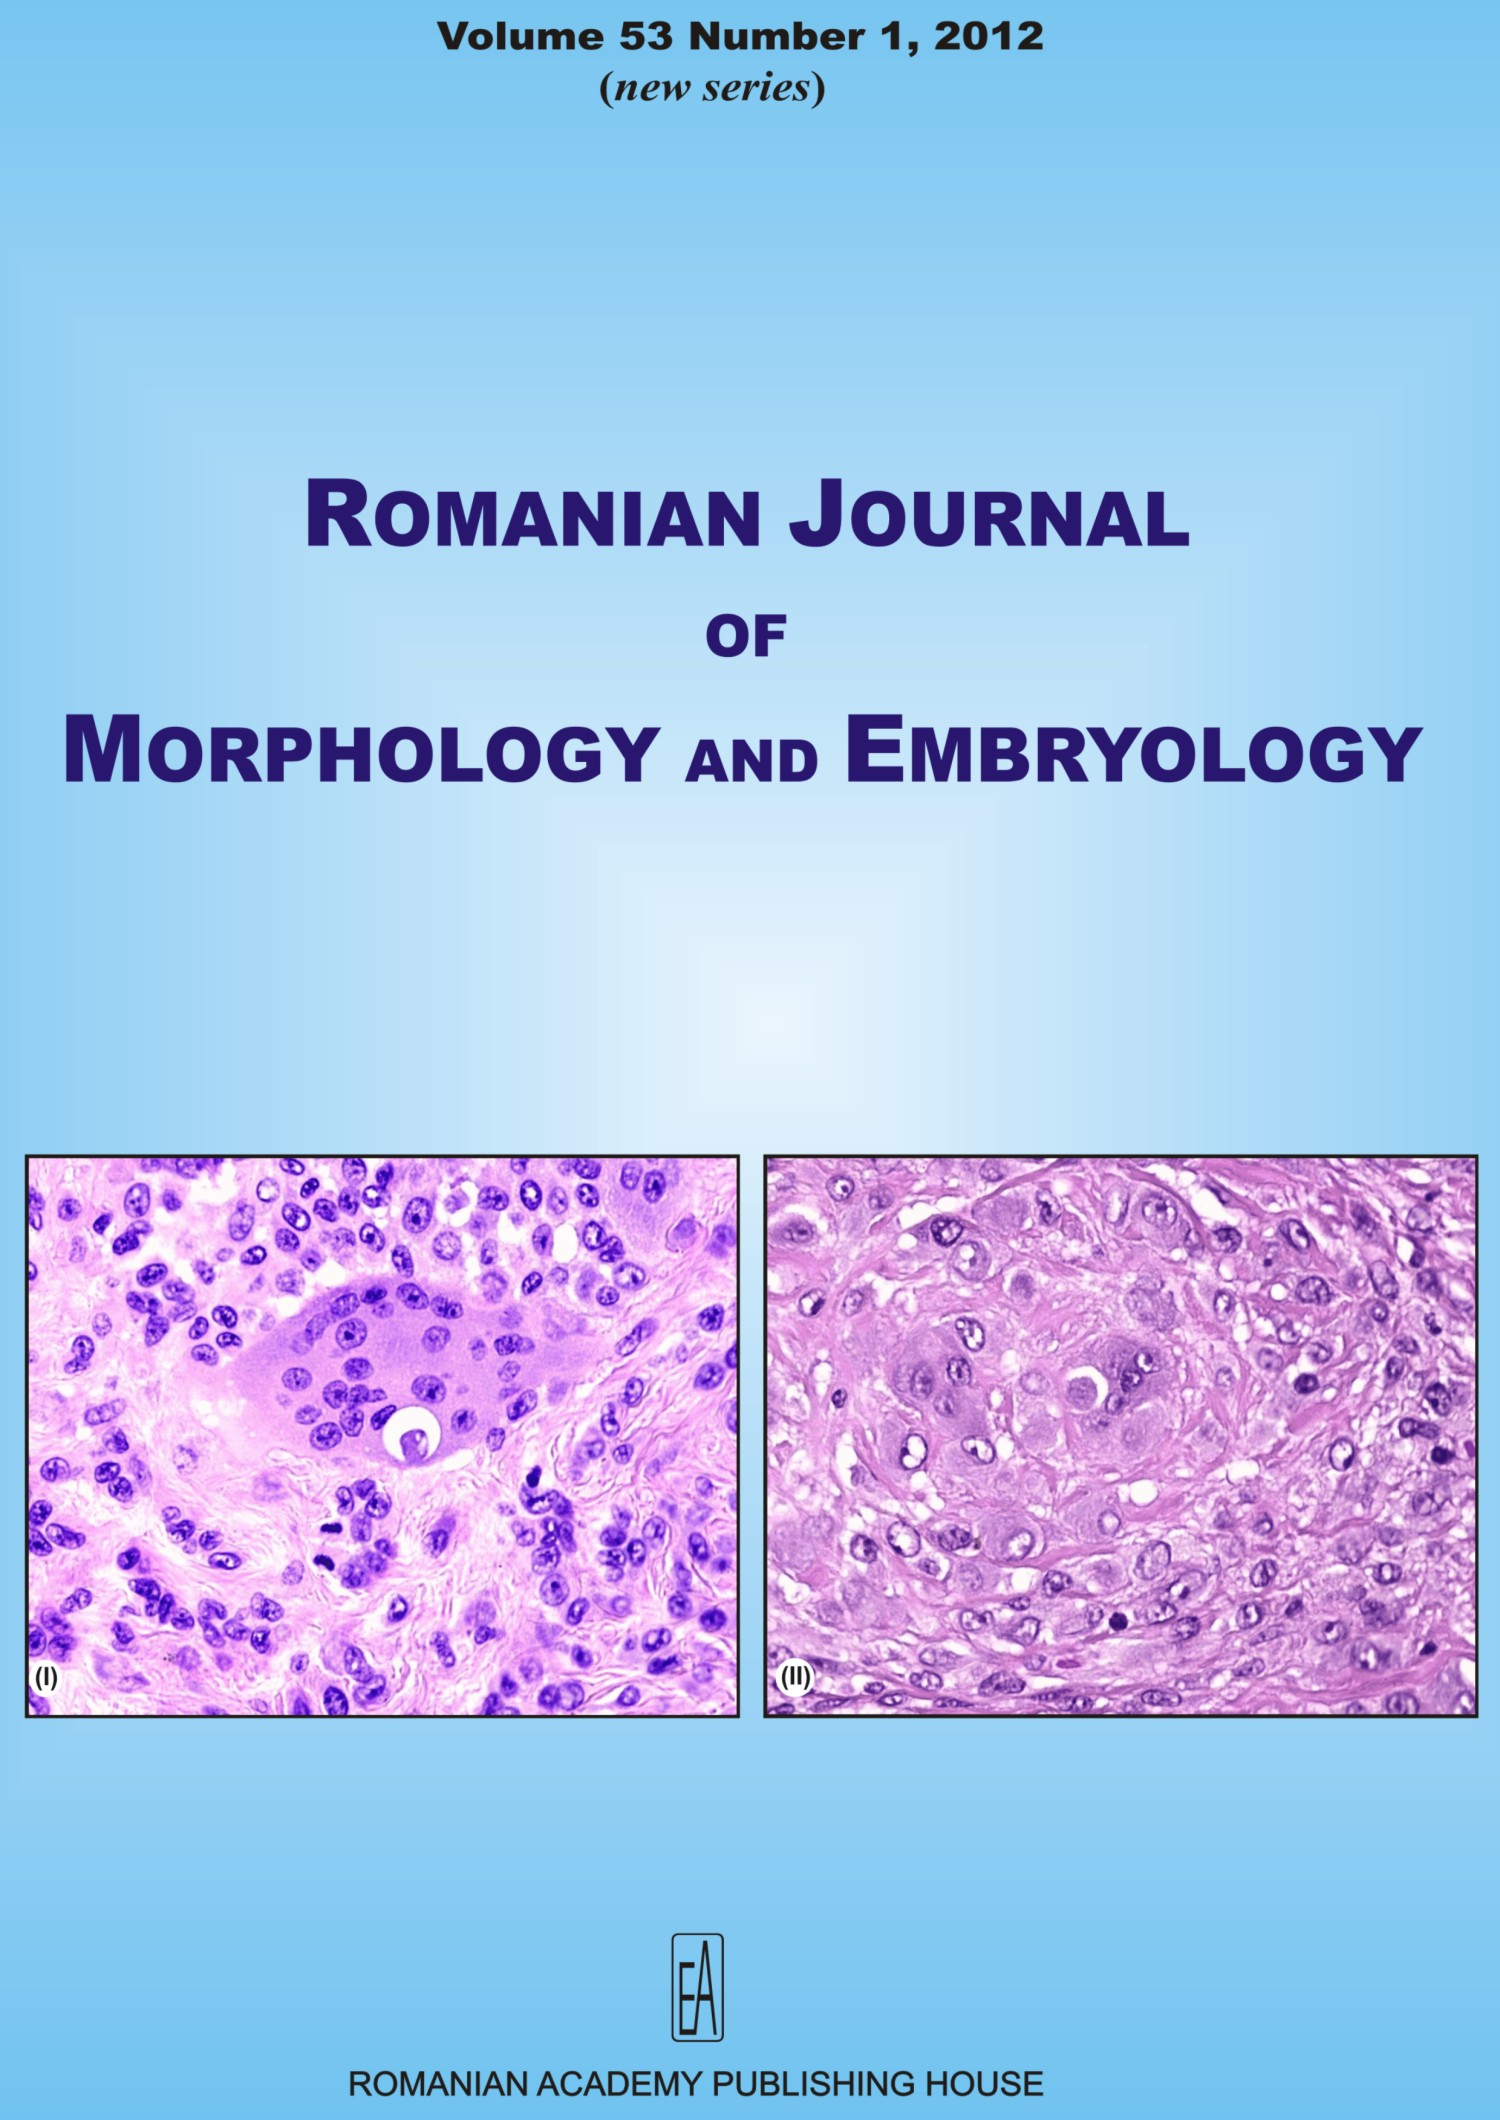 Romanian Journal of Morphology and Embryology, vol. 53 no. 1, 2012